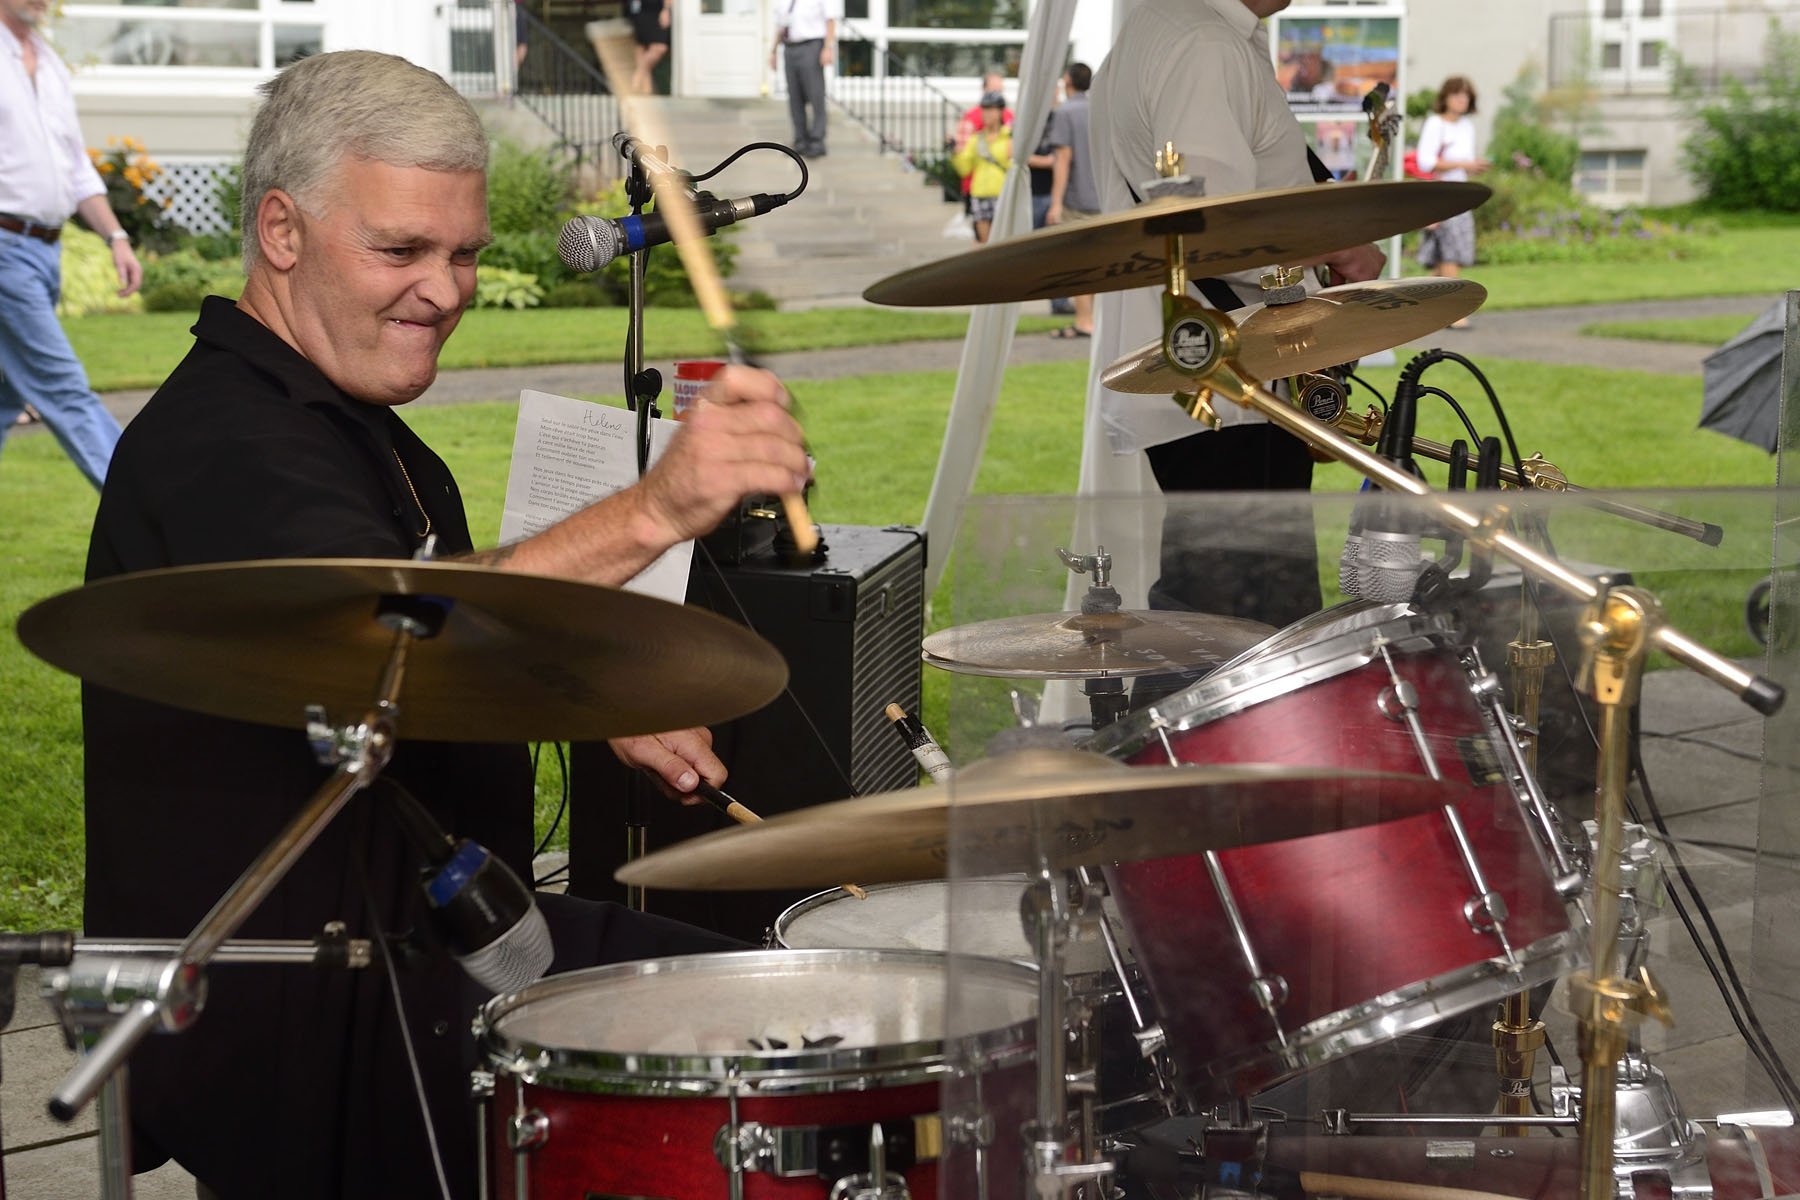 Mr. Pierre Lemire, a Commissionaire at Rideau Hall, played the drums and sang with his band.